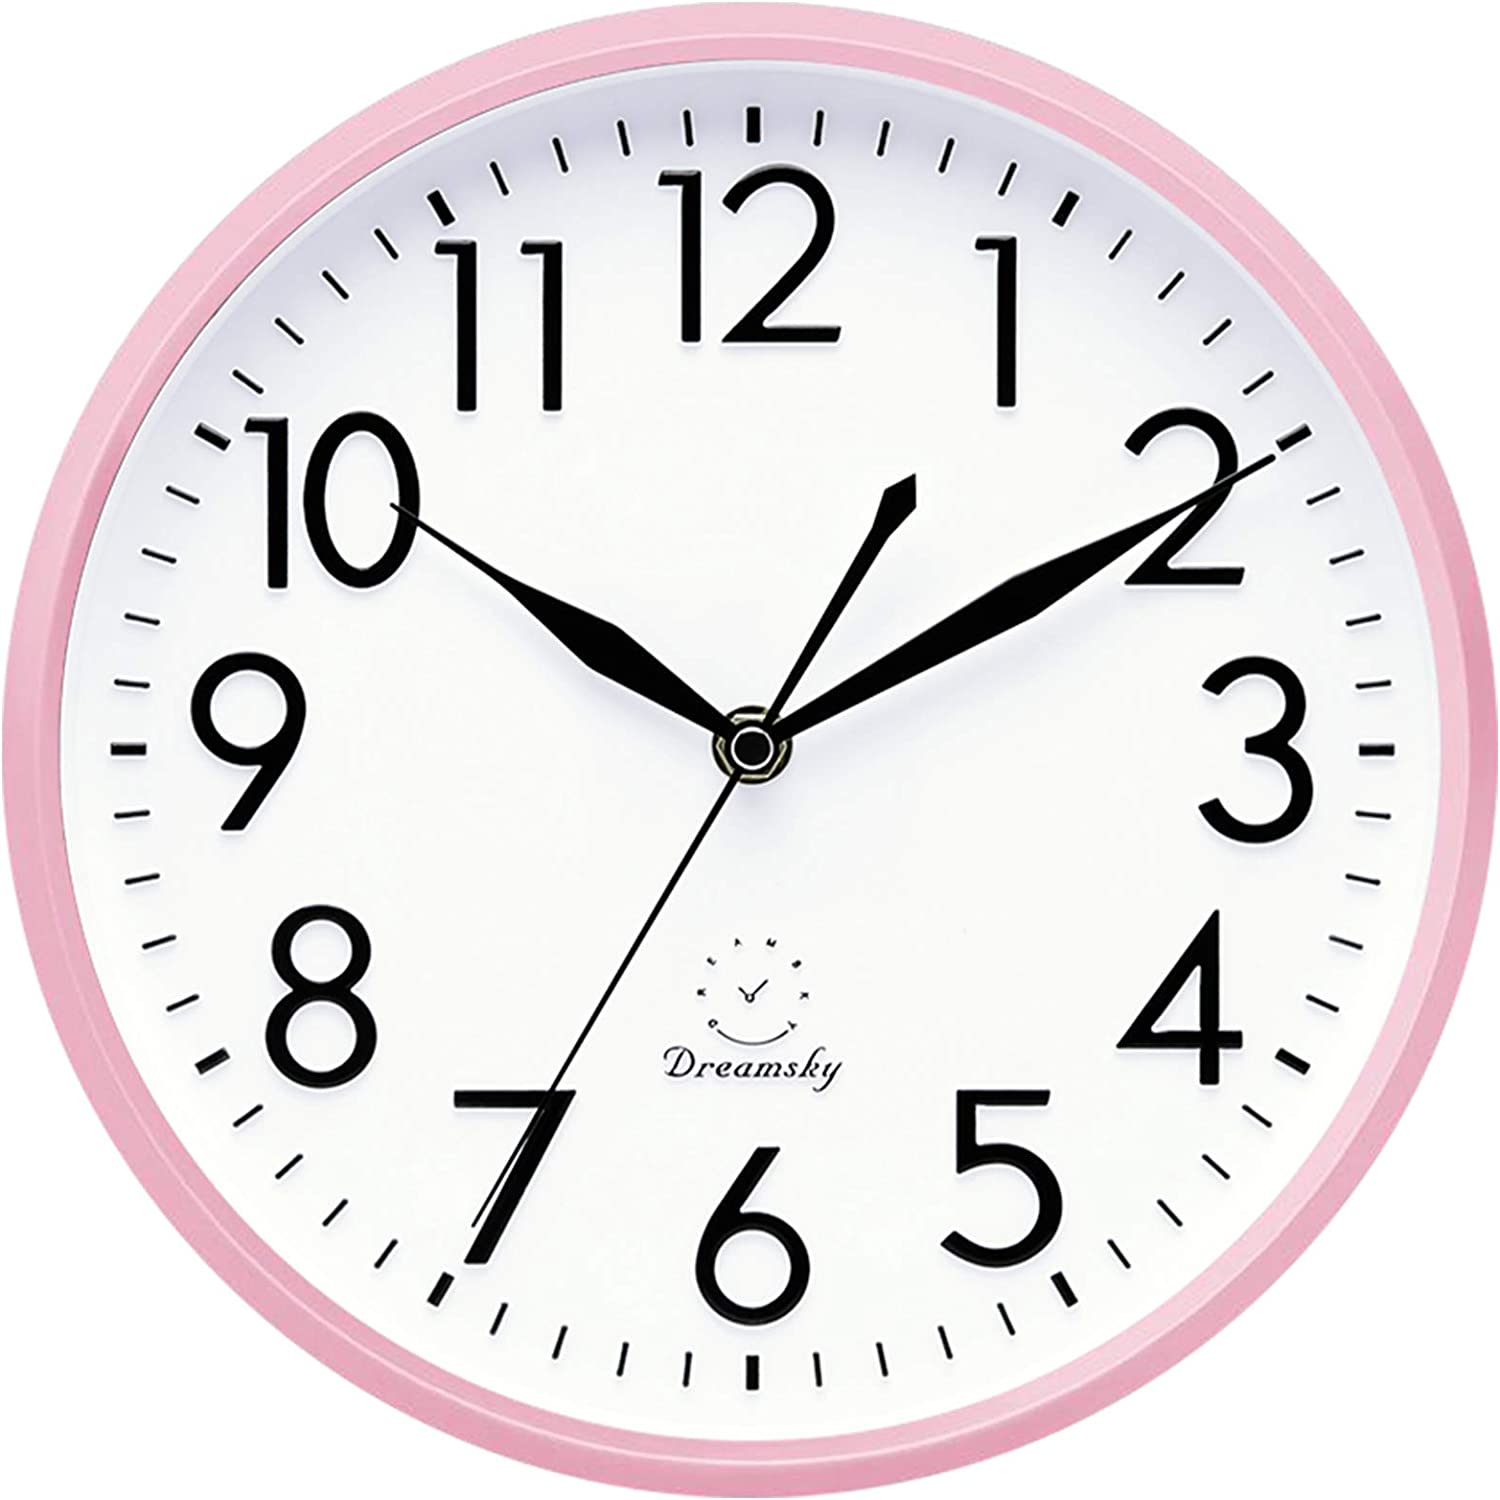 Amazon Com Dreamsky 10 Inches Silent Wall Clock Battery Operated Non Ticking Decorative Indoor Kitchen Round Clock 3d Numbers Display Nice Pink Quiet Wall Clock For Kids Girls Nursery Room Home Kitchen